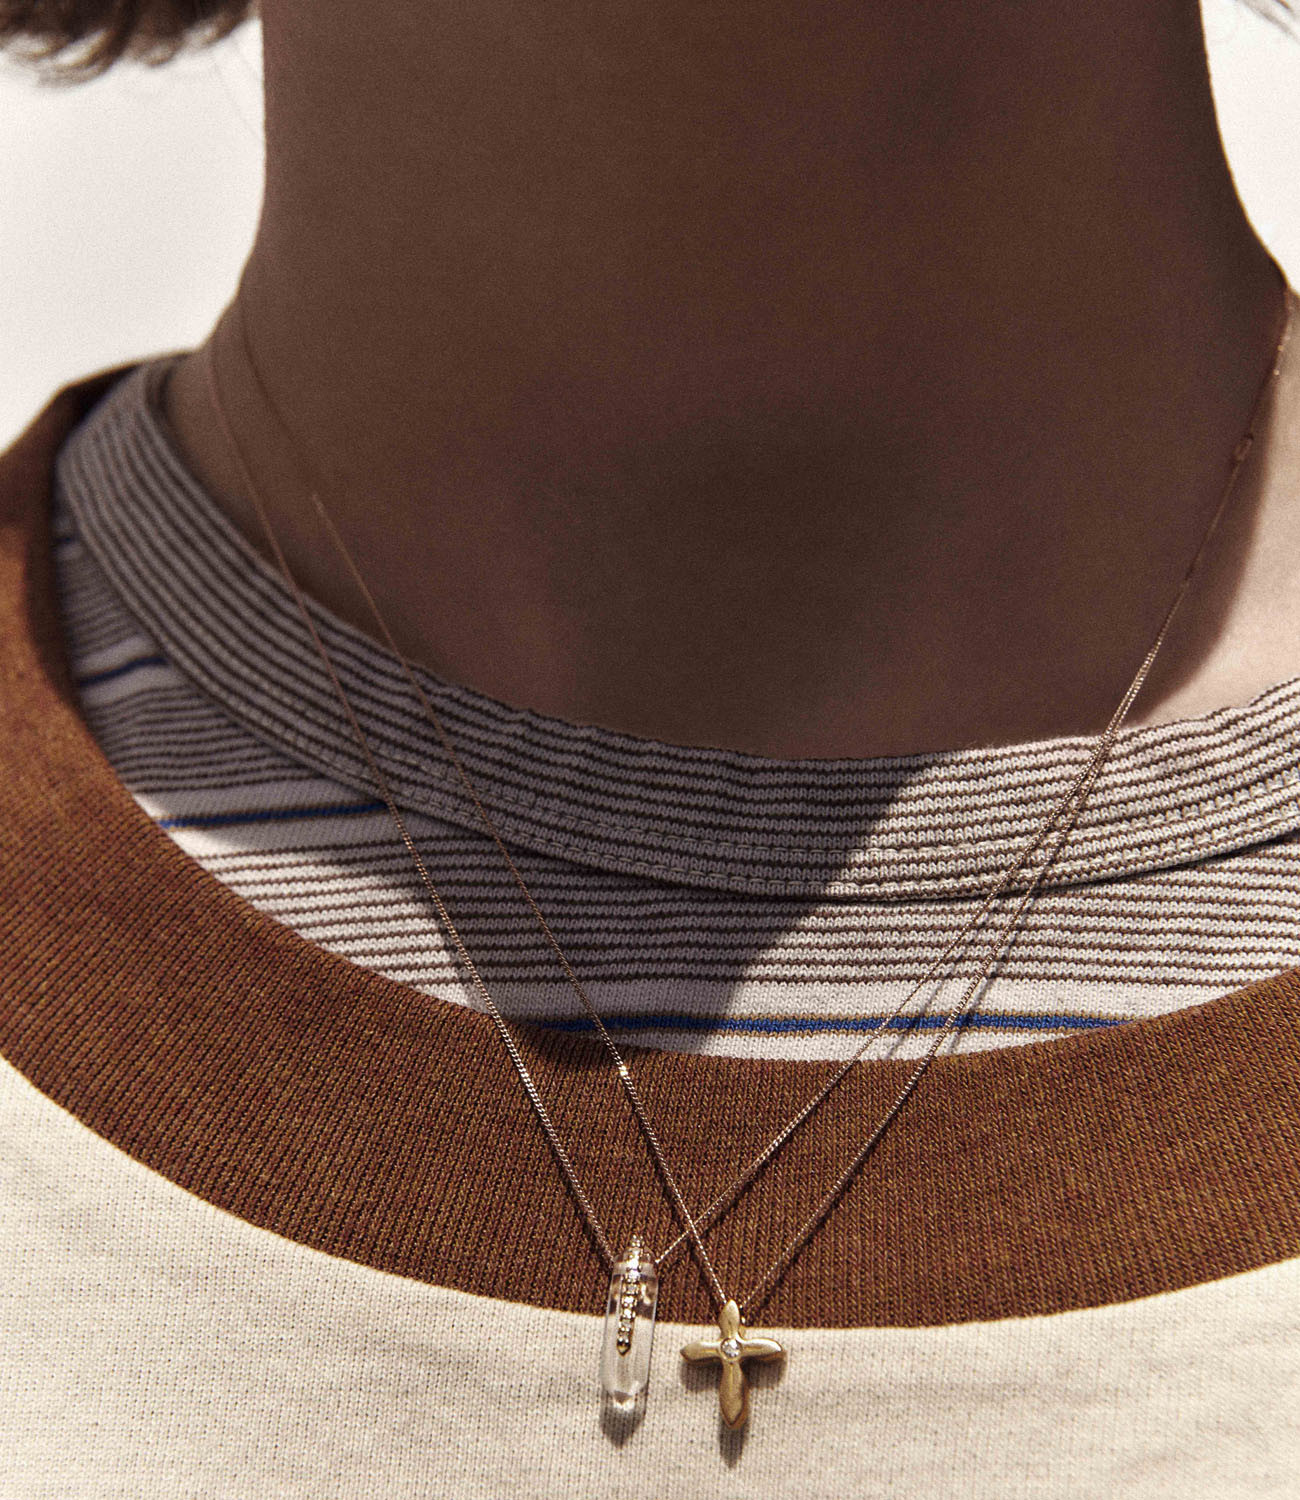 Pascale Monvoisin Necklace MOON N°1